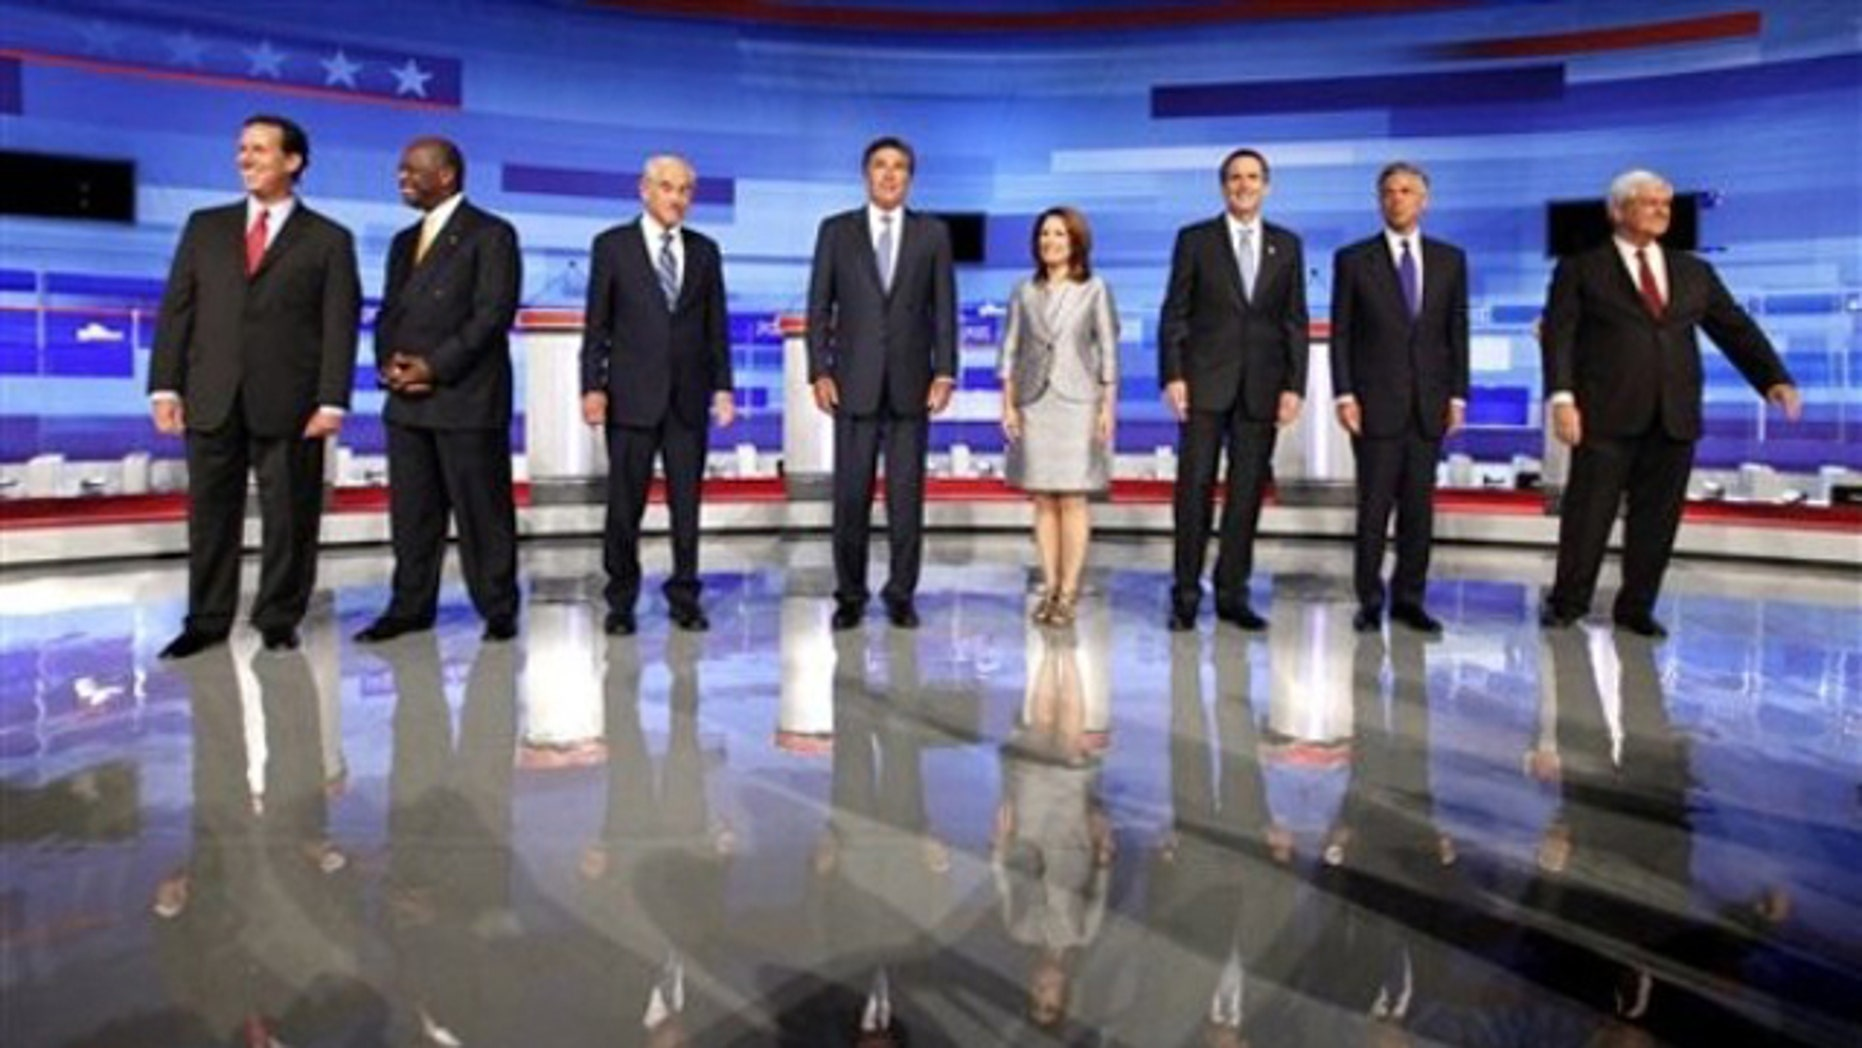 Republican presidential candidates line up before the start of the Iowa  GOP/Fox News/Google Debate in Ames, Iowa, Aug. 11.